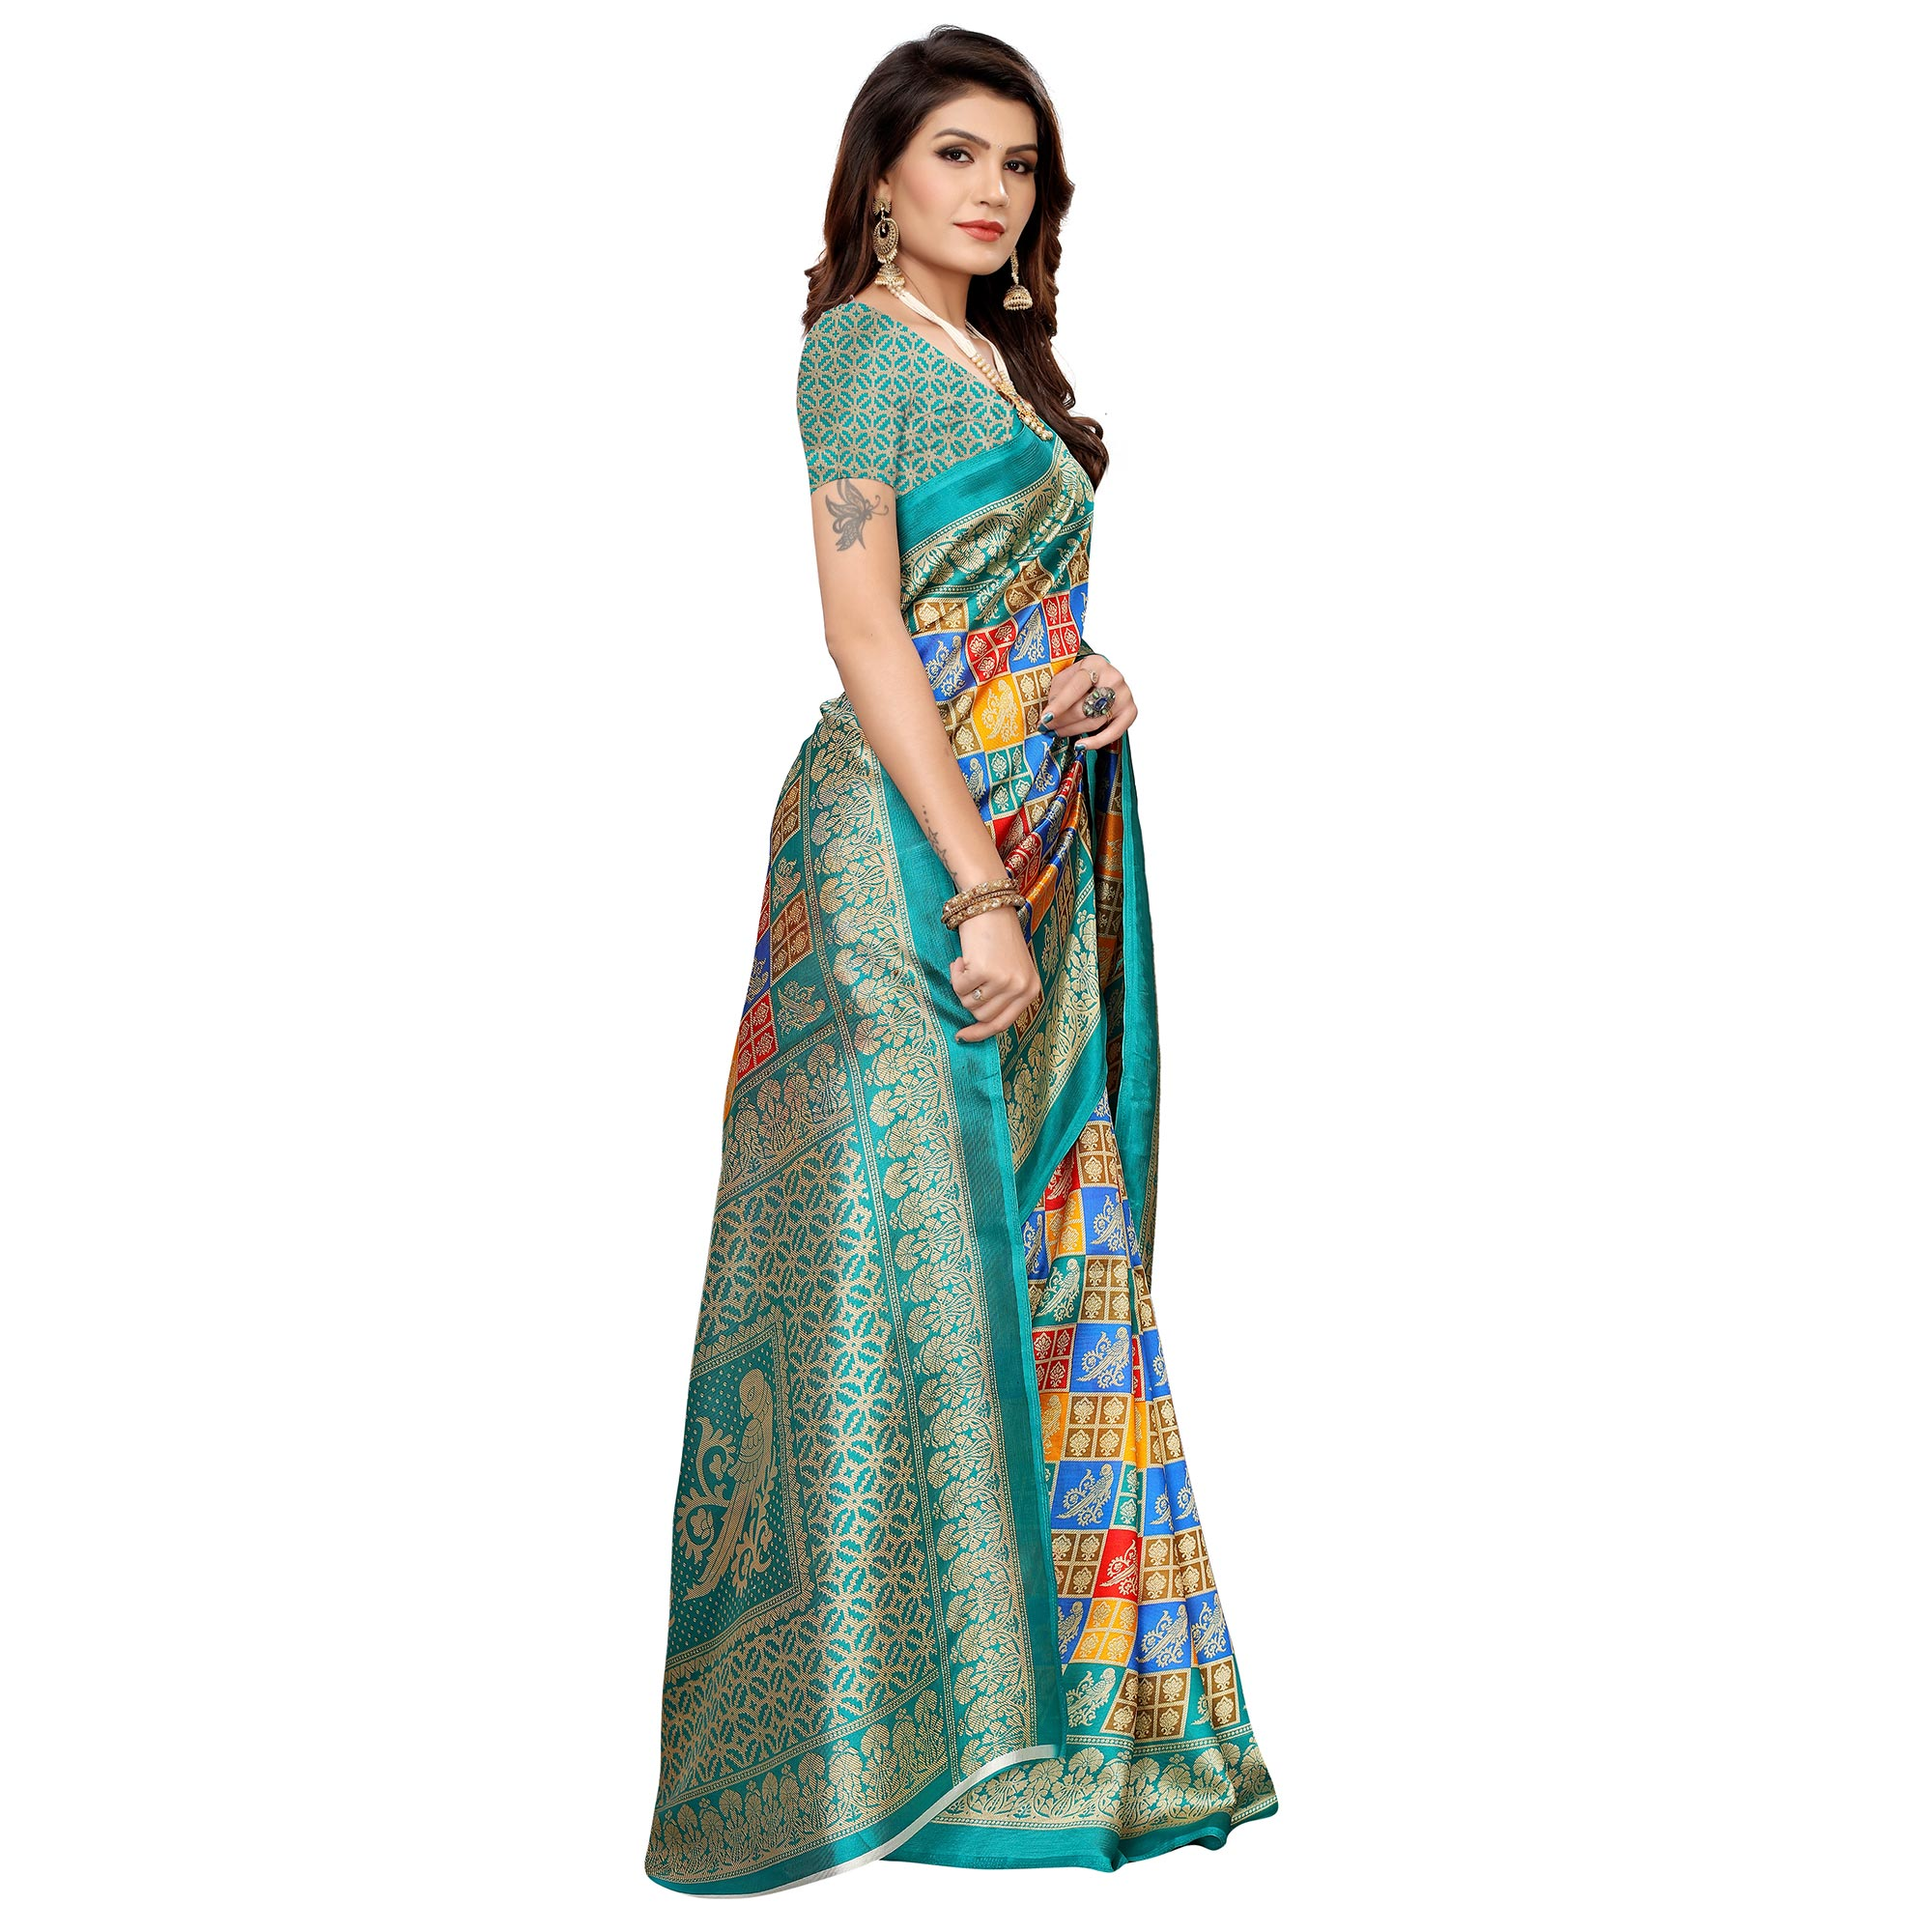 Flattering Multi-Turquoise Blue Colored Casual Printed Mysore Silk Saree